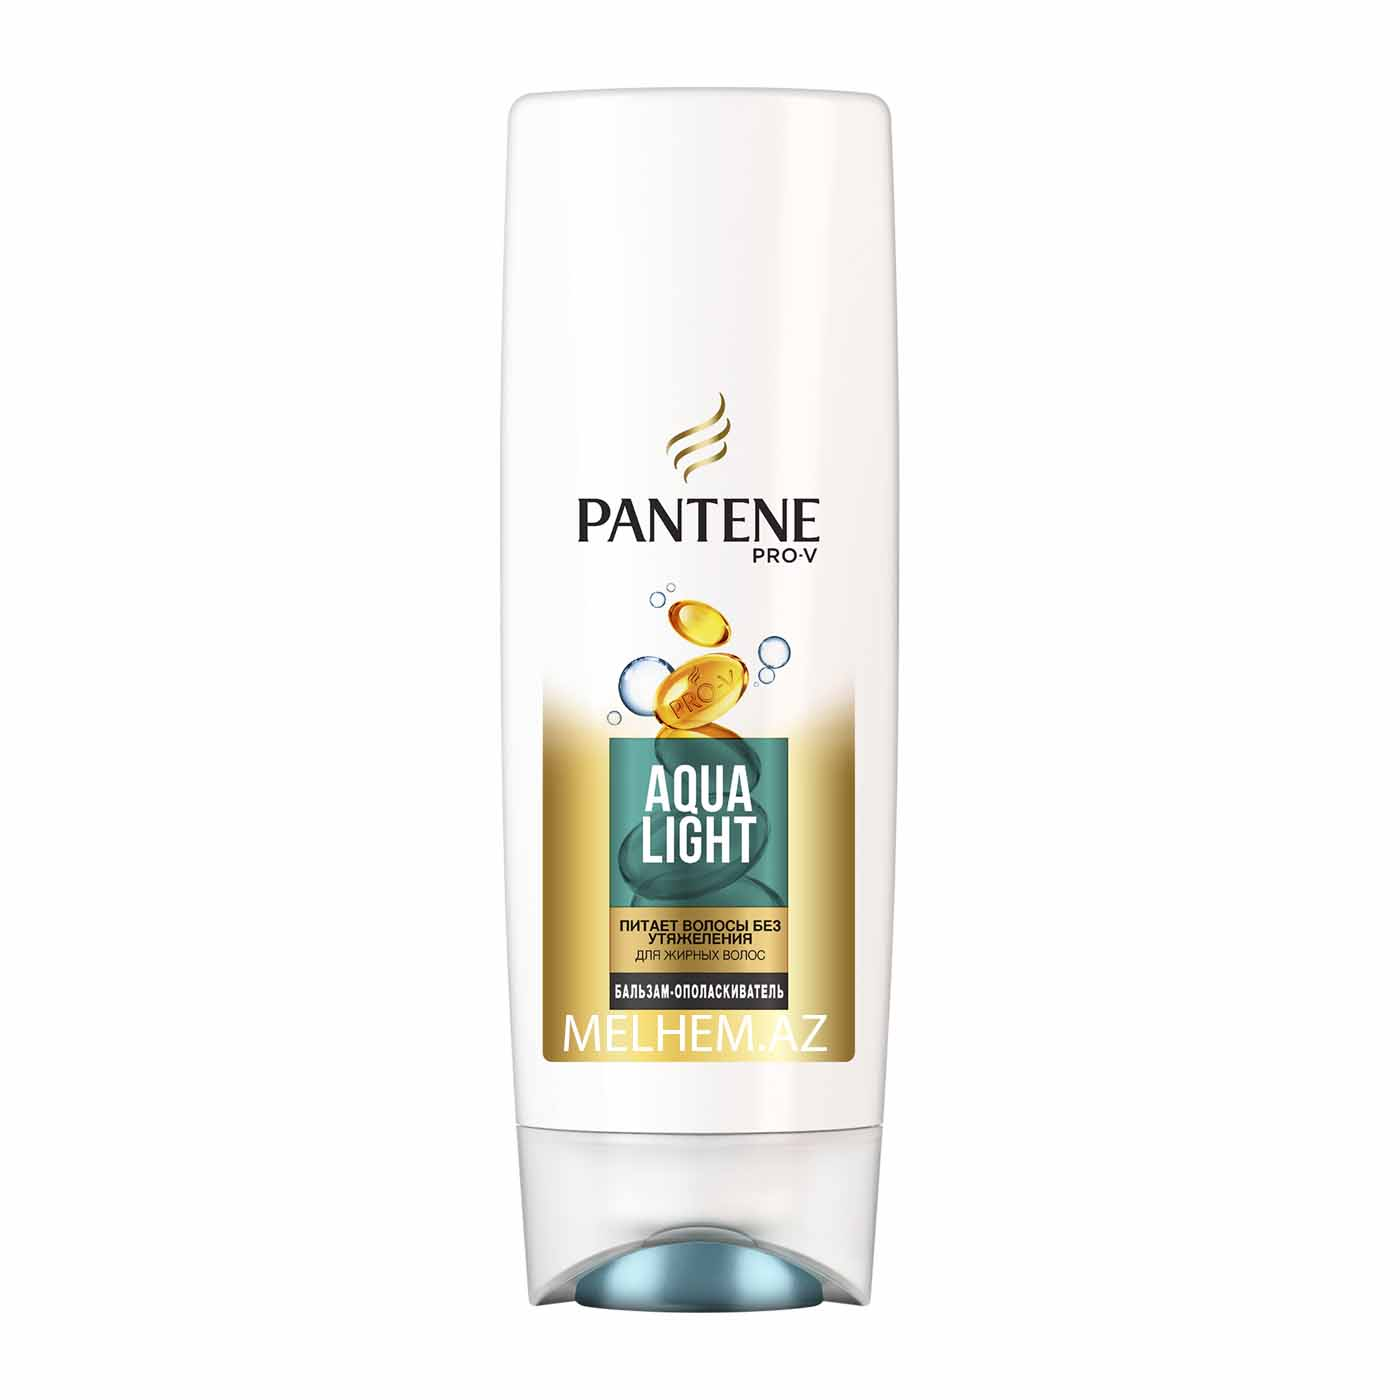 PANTENE BALZAM 200 ML (AQUA LİGHT)